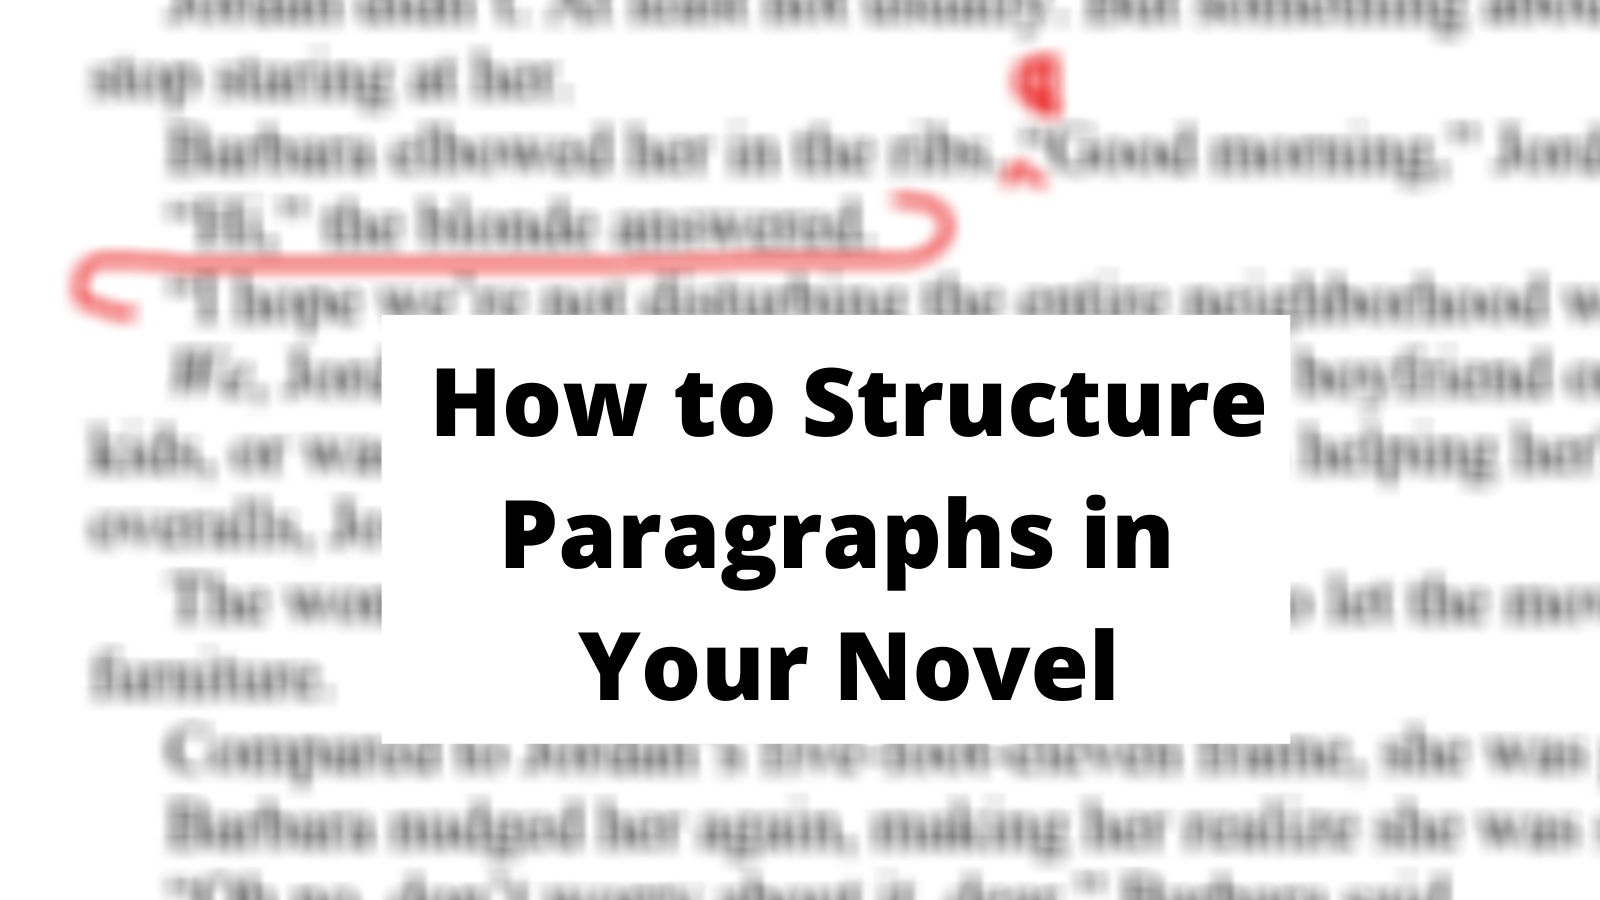 How to structure paragraphs